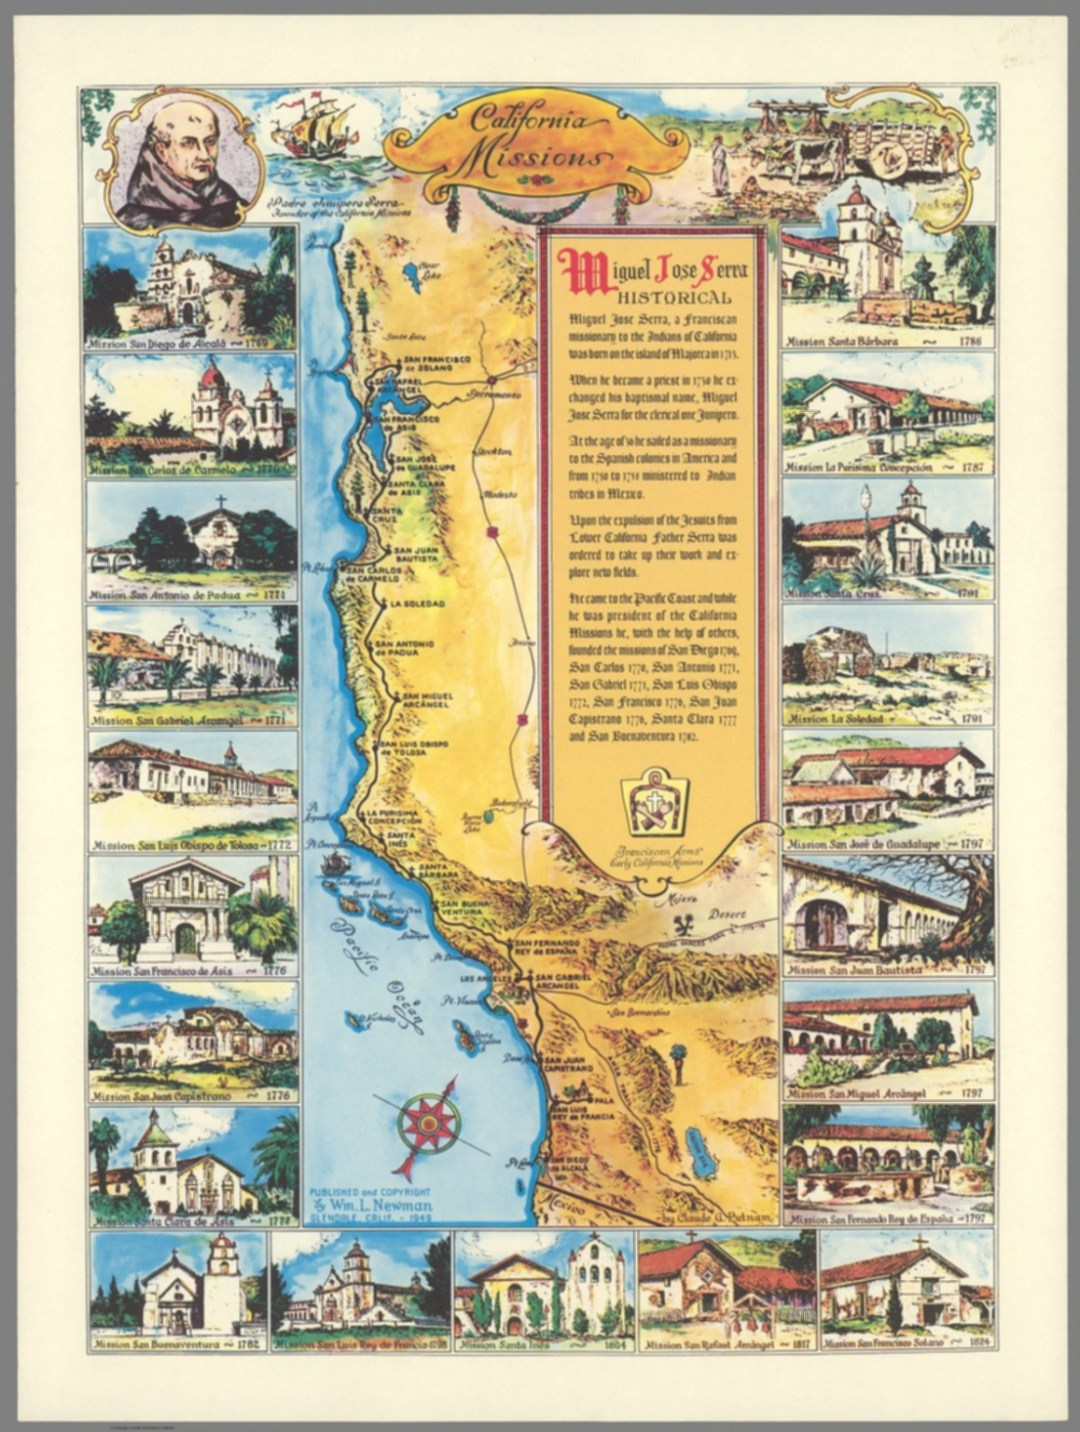 California Missions. By Claude G. Putnam, 1949. David Rumsey Historical Map Collection